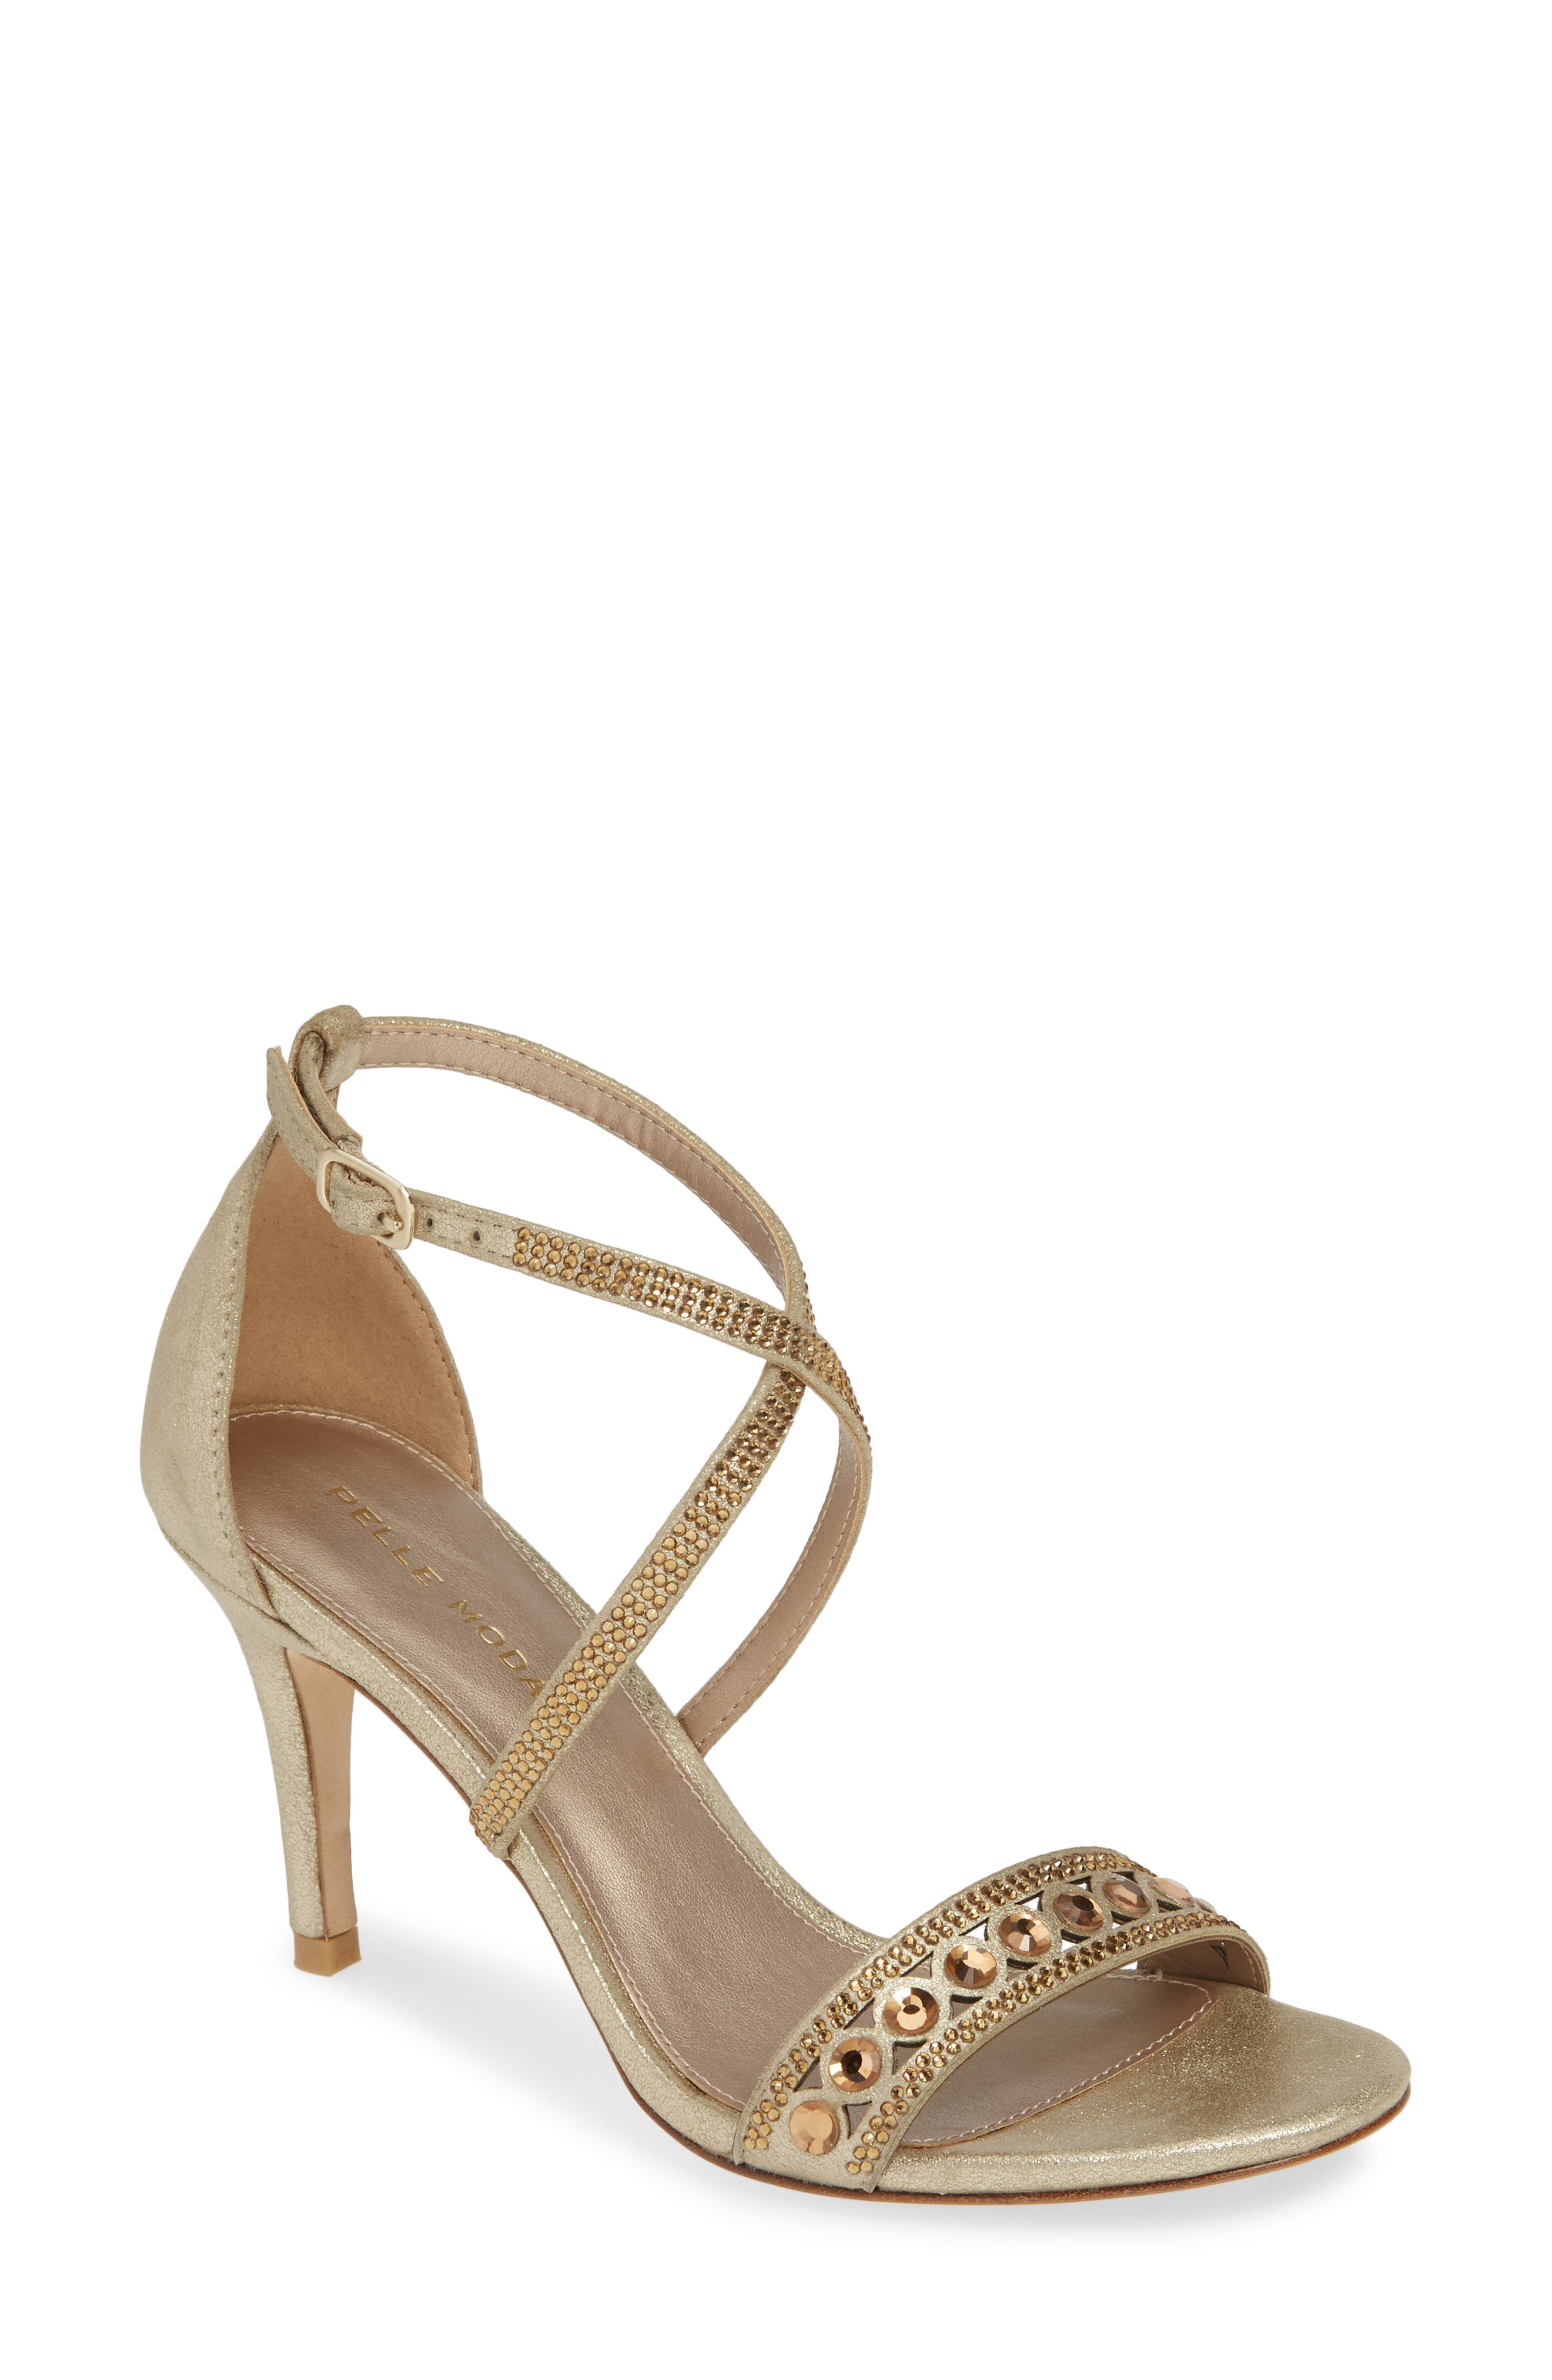 d76d9419c337 Pelle Moda Rory Crystal Embellished Sandal In Silver Nubuck Leather ...